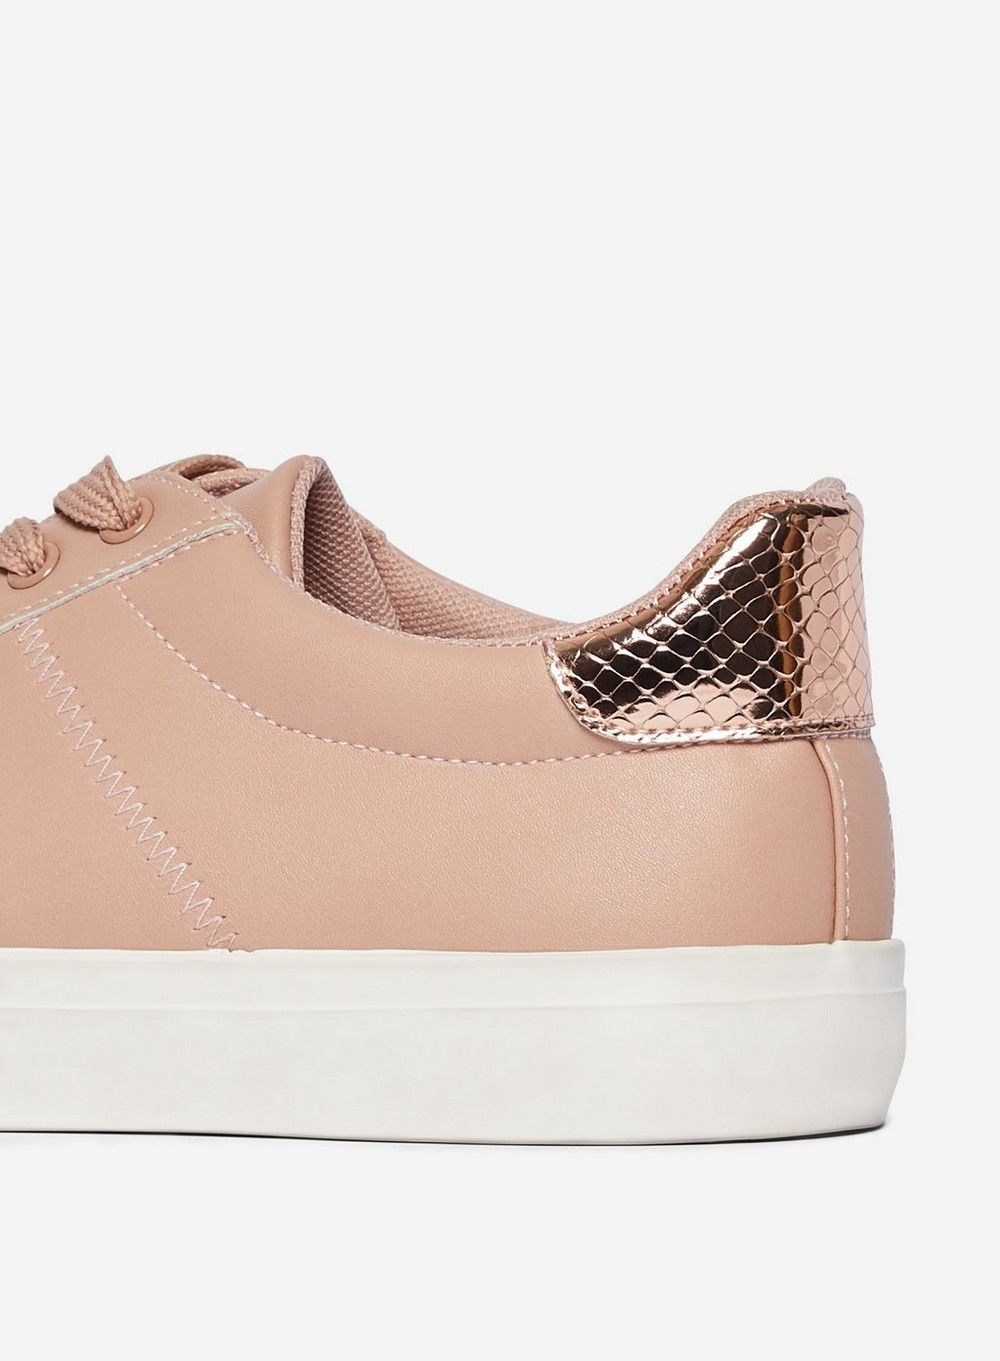 Dorothy Perkins Womens Blush Ink Fashion Casual Trainers Lace Up